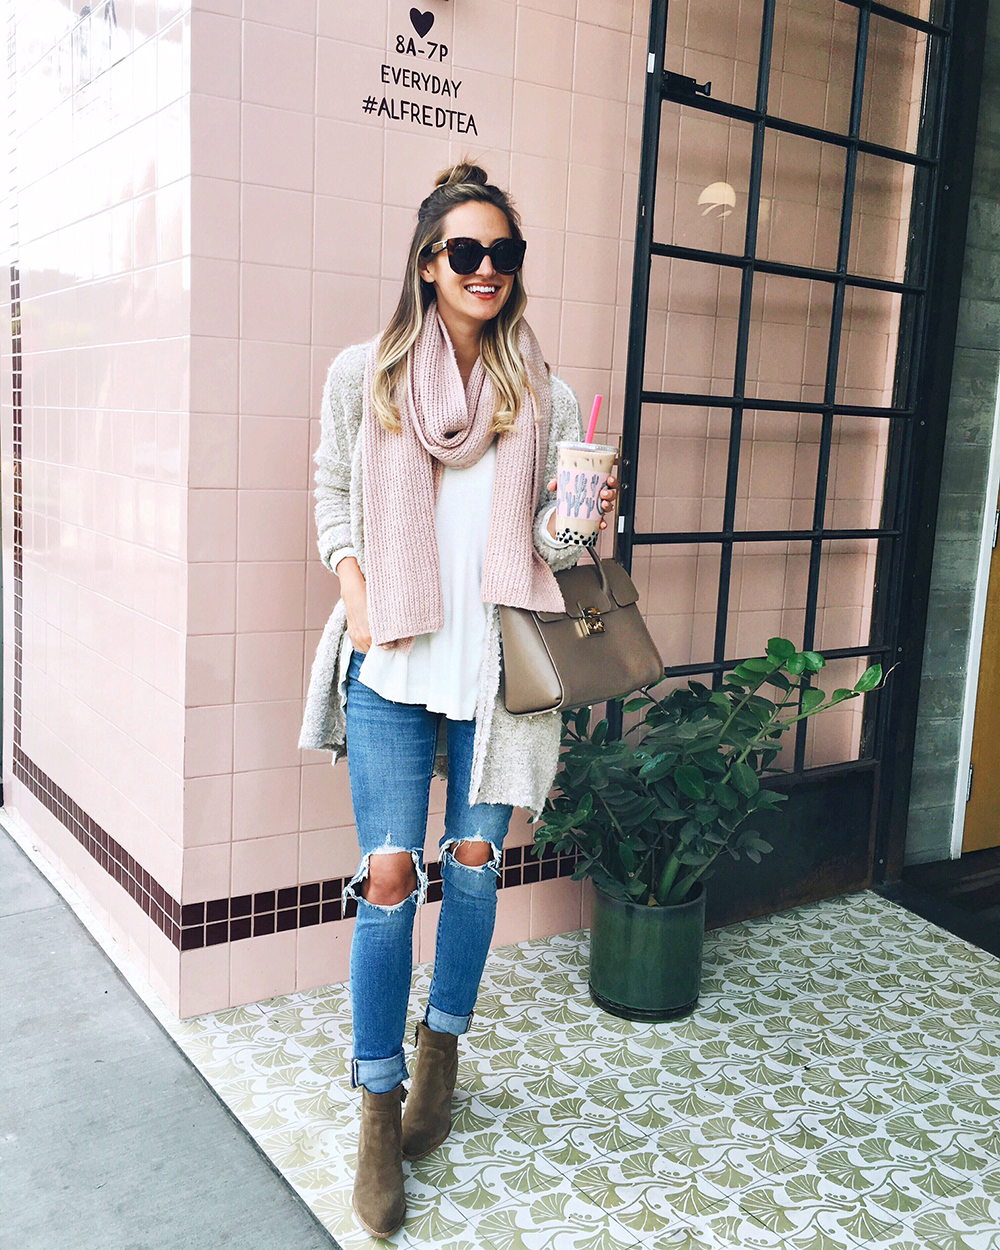 livvyland-blog-olivia-watson-instagram-roundup-december-cozy-blush-pink-knit-scarf-alfred-tea-room-outfit-blogger-los-angeles